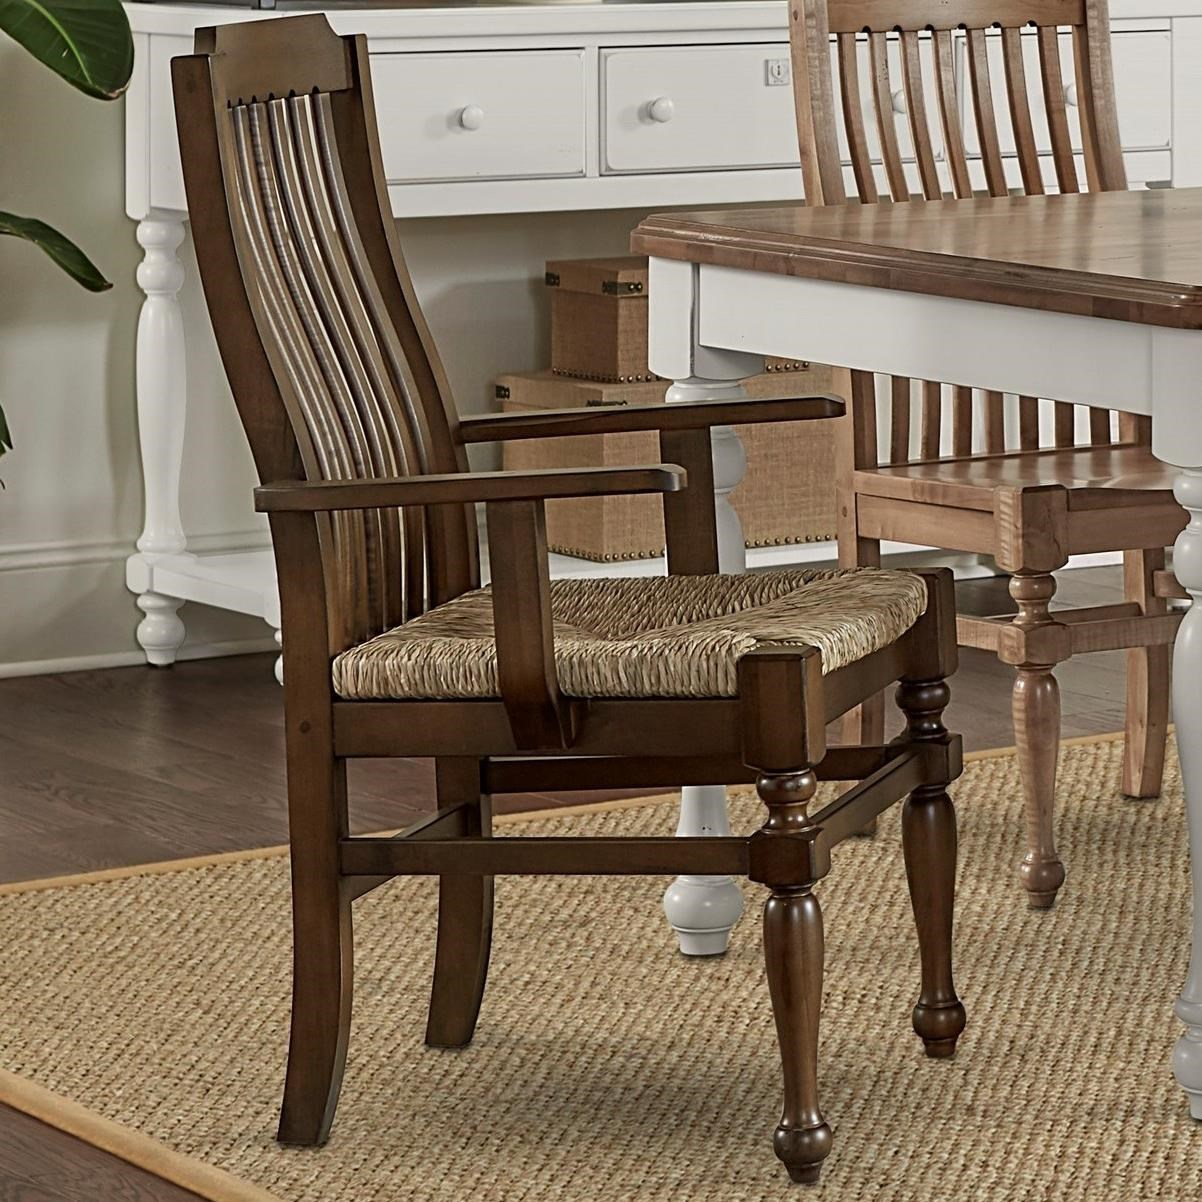 Seagrass Dining Chair Laurel Mercantile Co Scotsman Rustic Solid Wood Seagrass Seat Arm